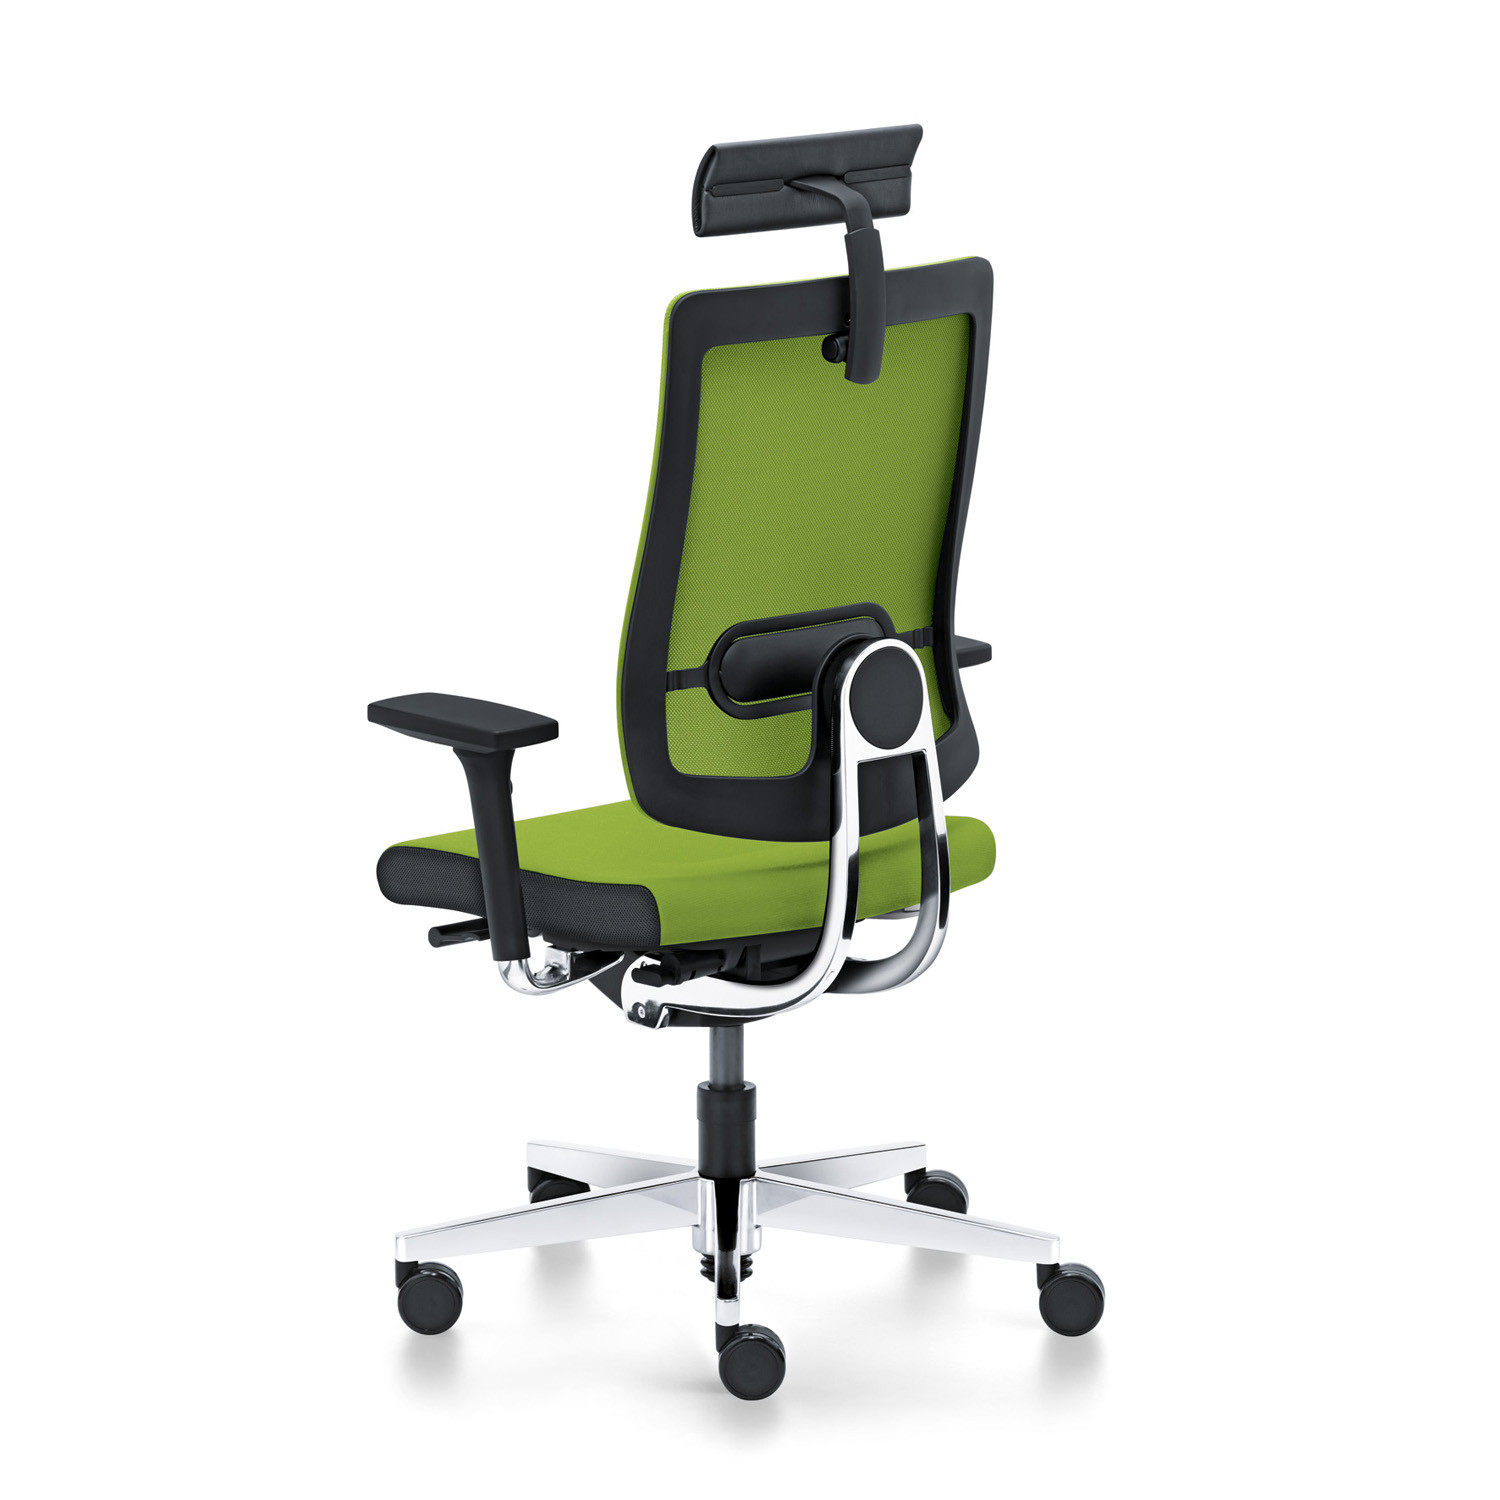 Black Dot Net Executive Chair with headrest